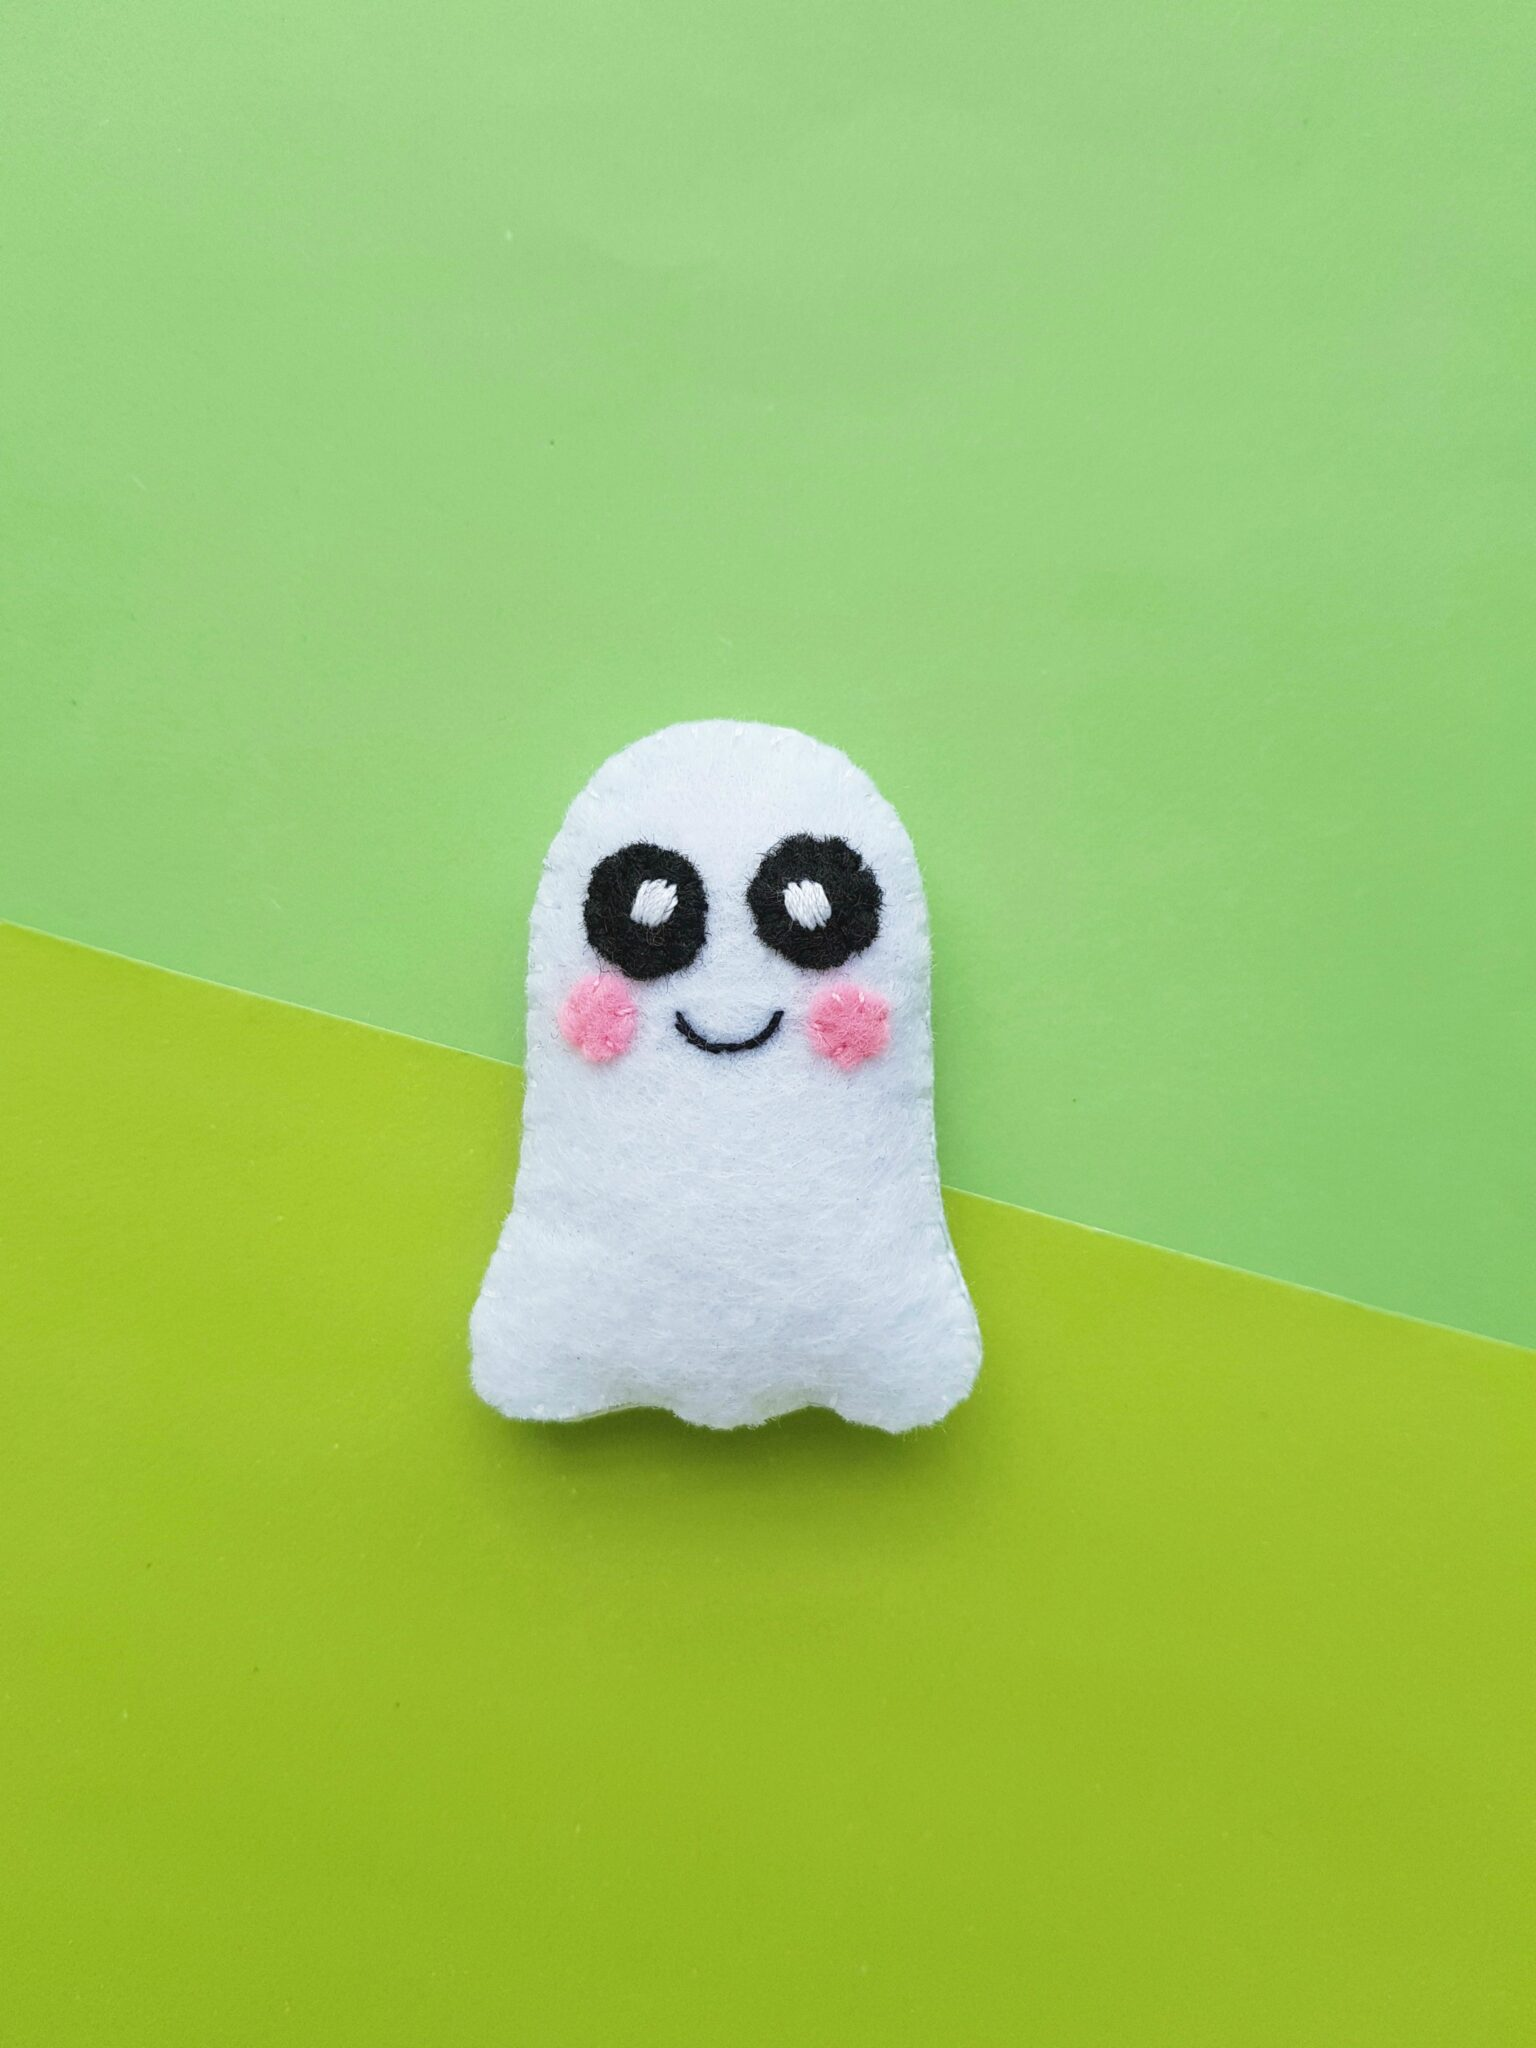 A cute little felt ghost plush sits on a light and dark green background. It has rosy cheeks and cute bright eyes.